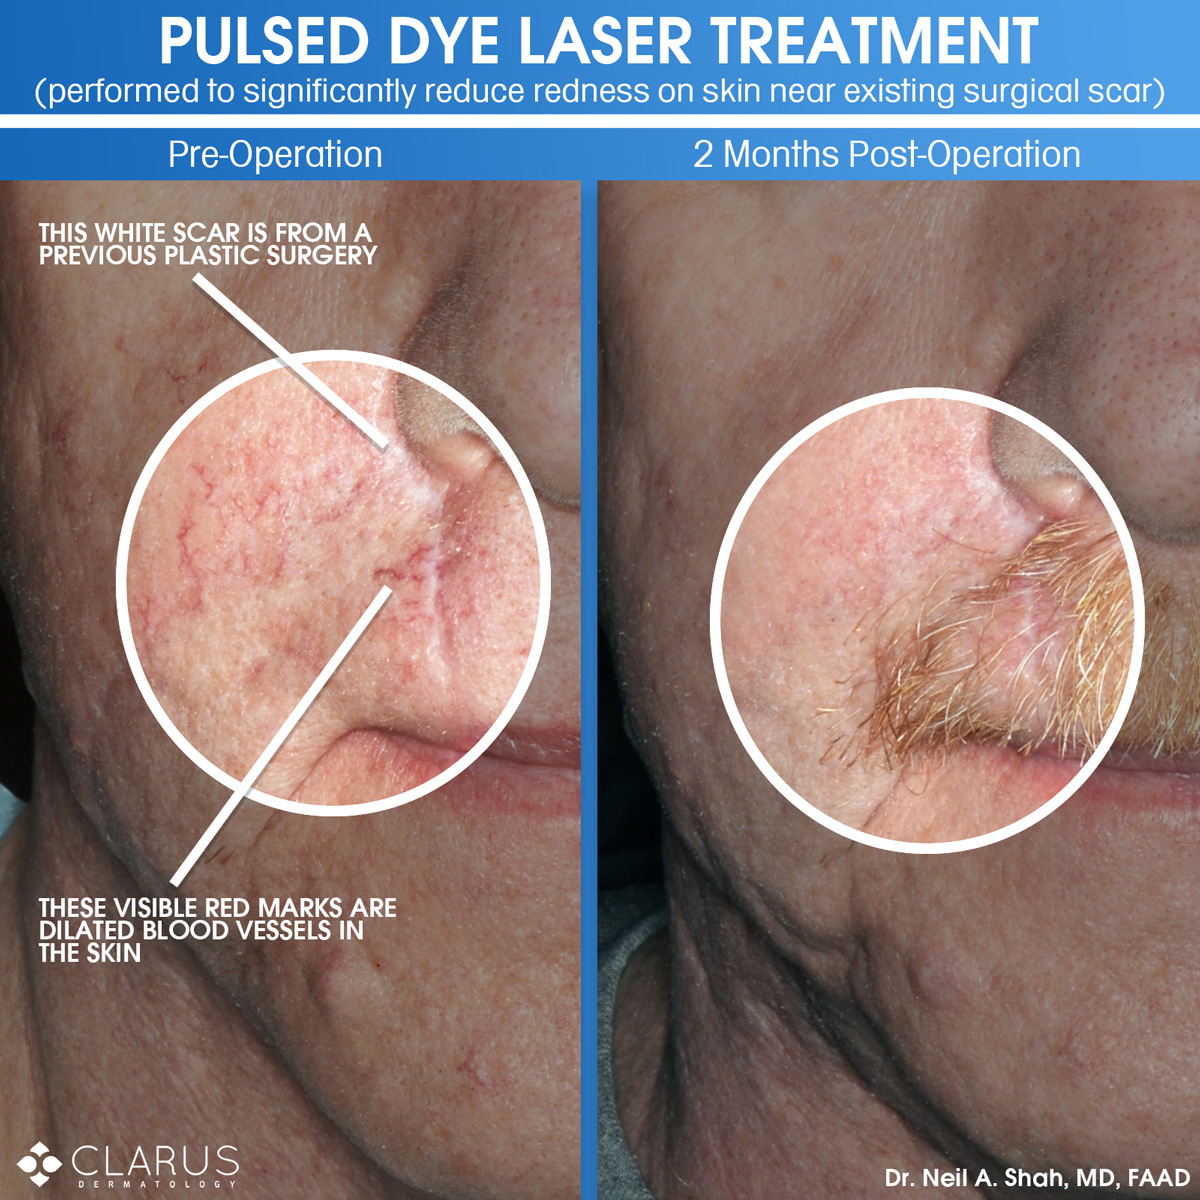 We use lasers in a number of treatments that we perform here at Clarus Dermatology. The improved aesthetic look of the skin from even one round of treatment can be quite stark. The before and after images here are from a patient that had a significant amount of redness on the skin of his cheek and upper lip, including a number of dilated blood vessels.